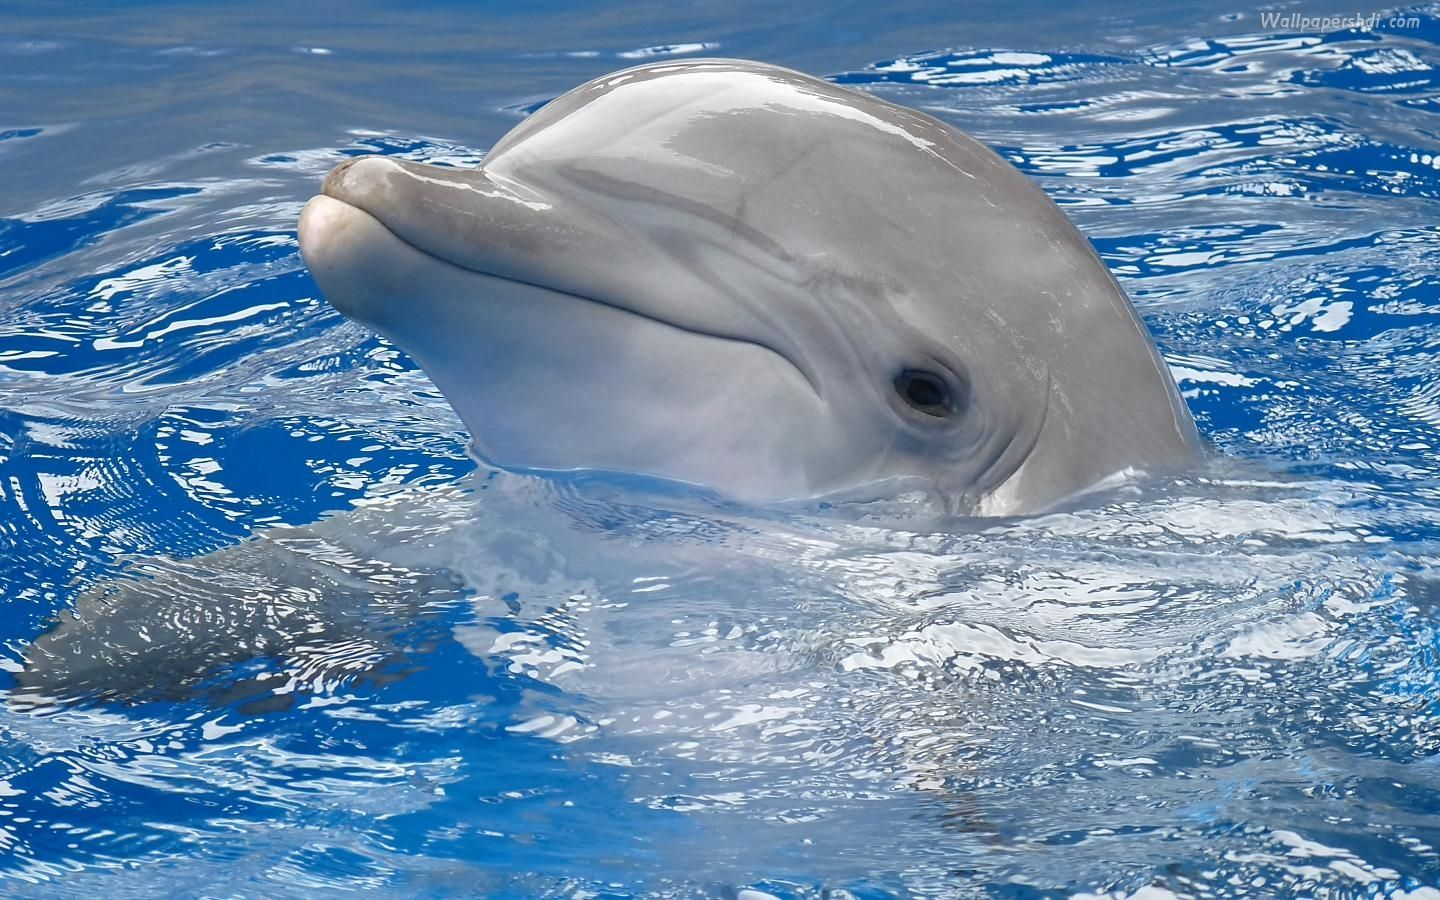 You are viewing dolphin wallpaper 1440900 full hd and free you are viewing dolphin wallpaper 1440900 full hd and free download voltagebd Gallery